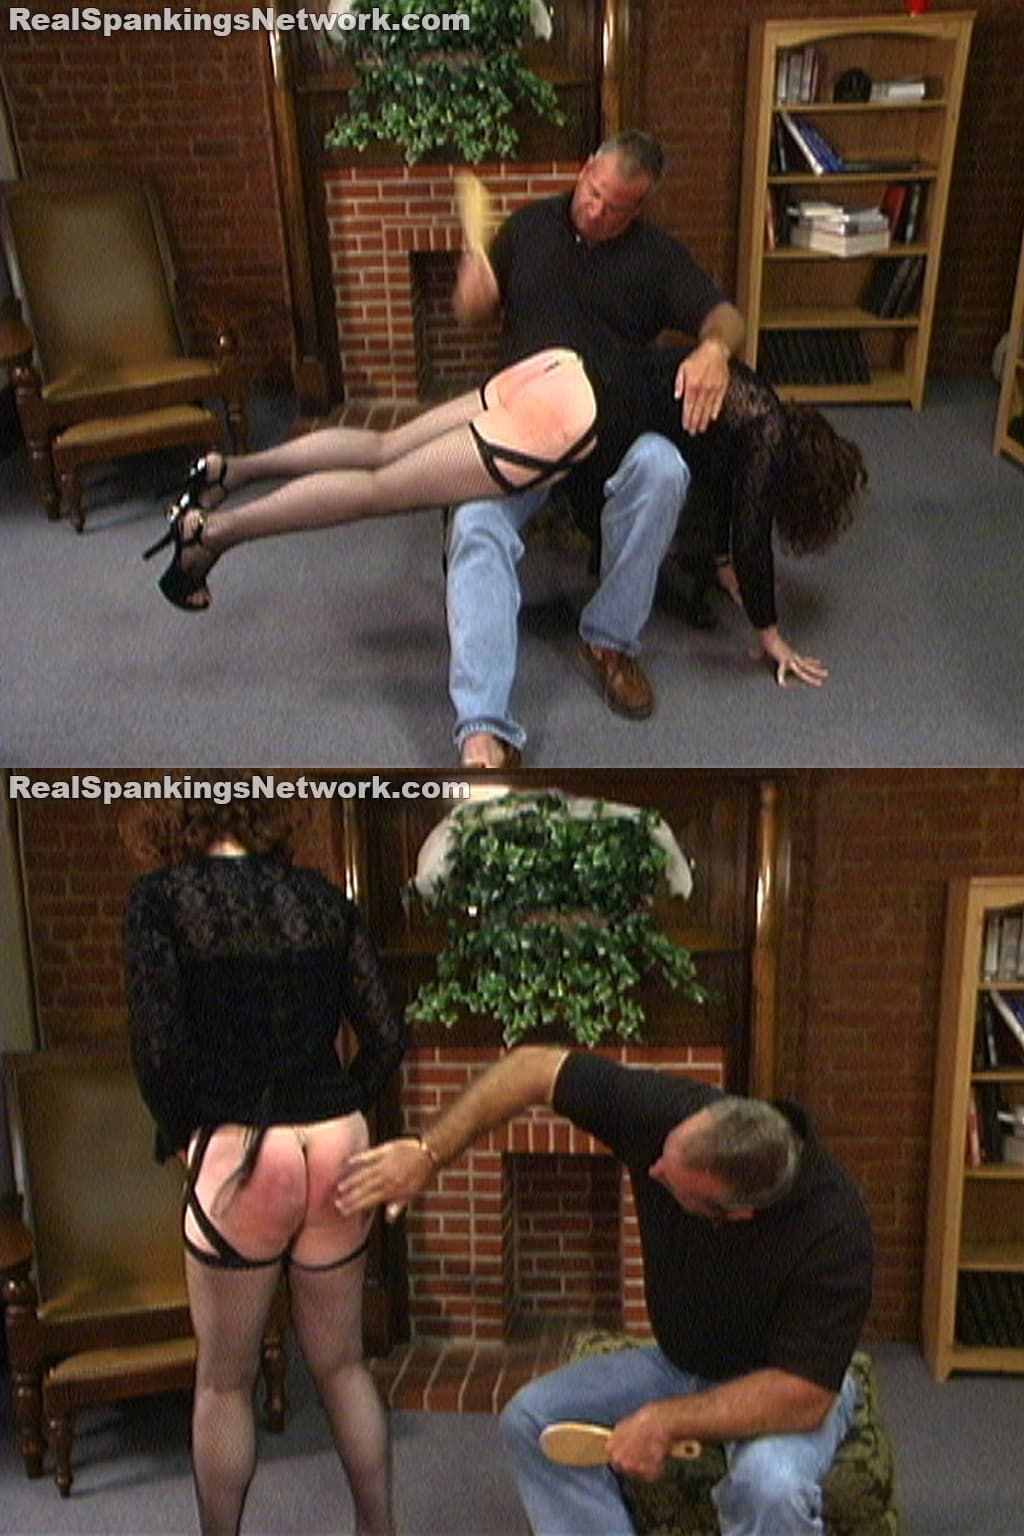 Real Spankings – MP4/SD – Real Discipline Series: Sammie (Release date: Apr 01, 2021) – OTK (Over The Knee)